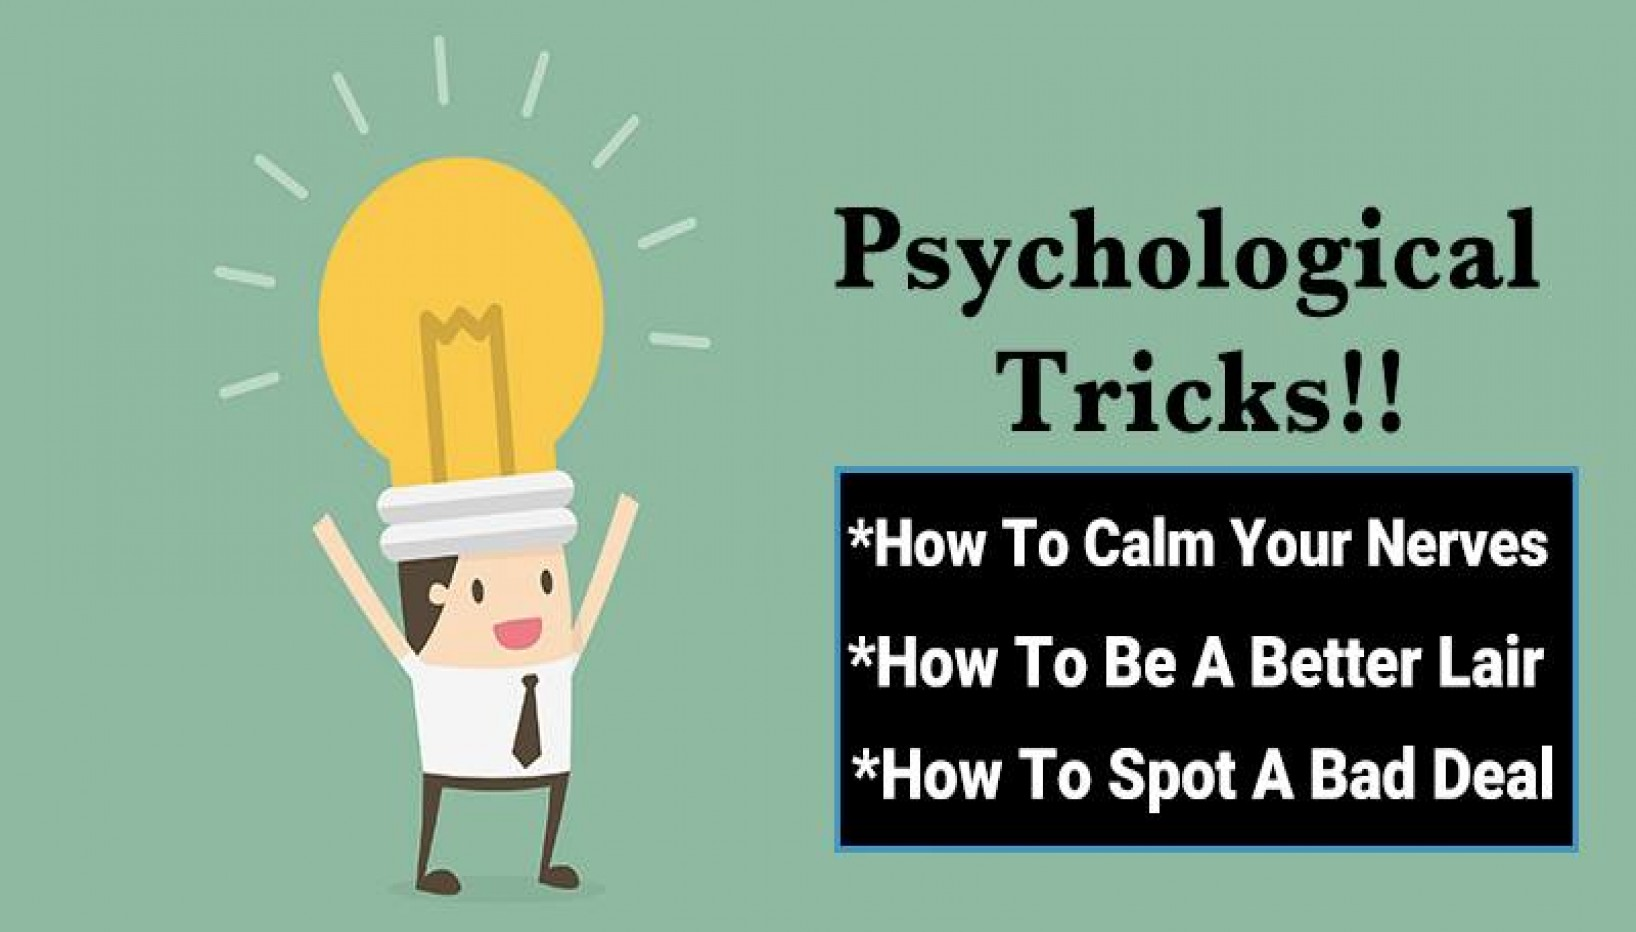 10 Psychology Tricks You Can Use To Get The Finer Things In Life